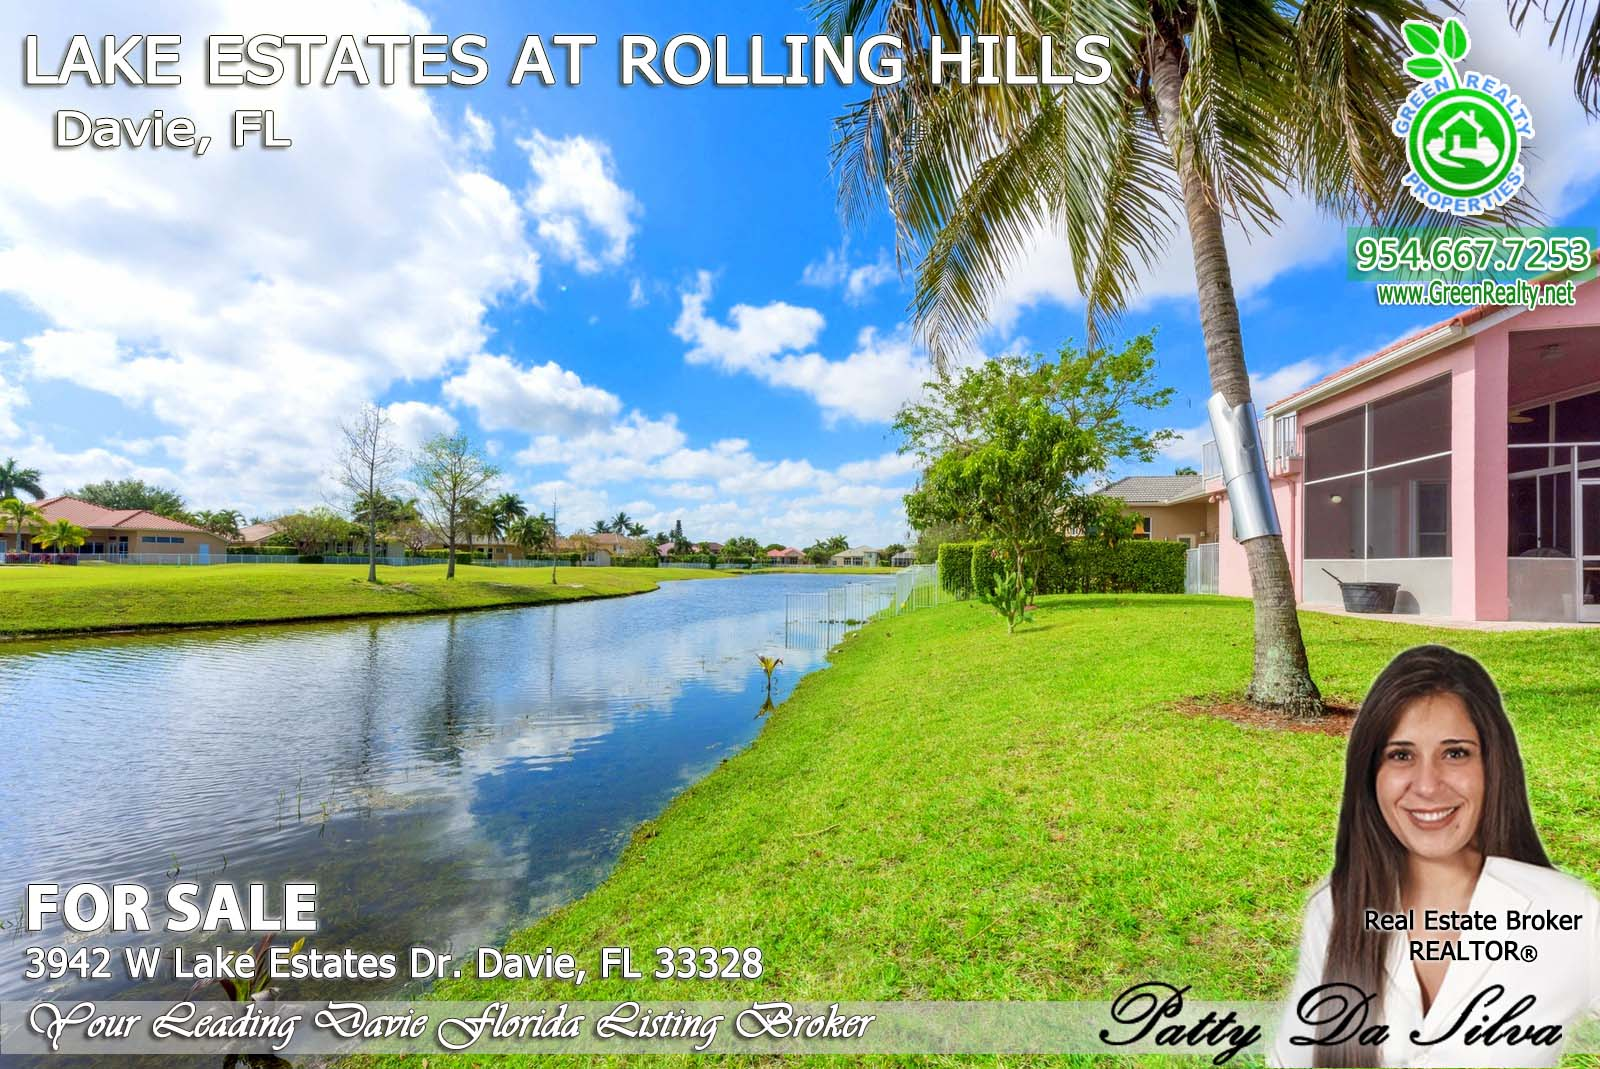 3942 W Lake Estates Dr - Davie FL 33328 (28)